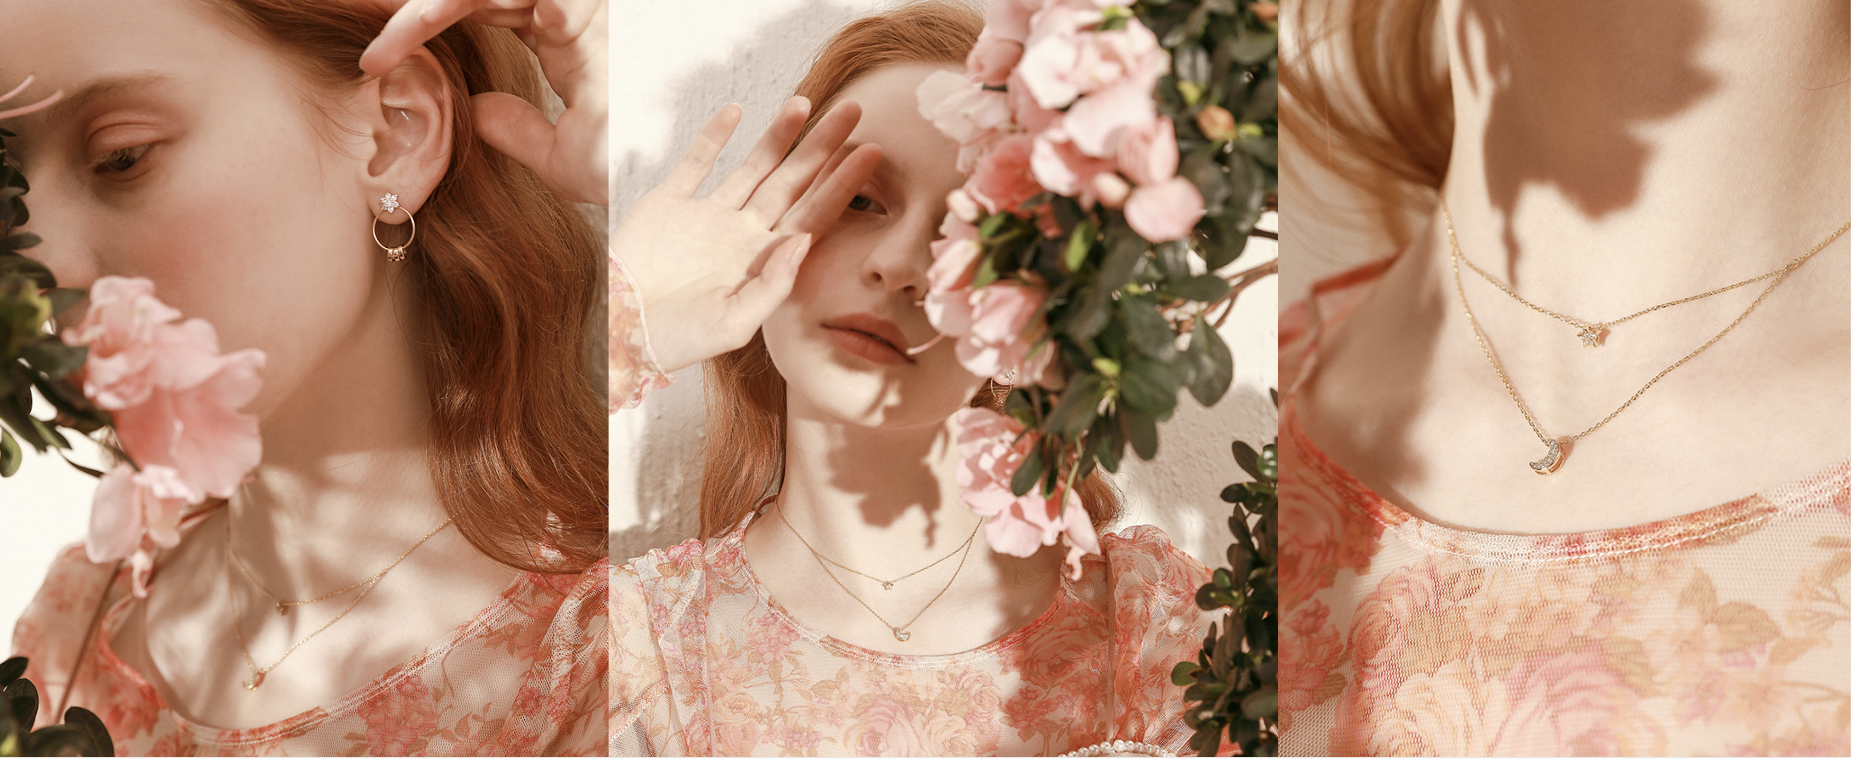 Spring 2019 from COFAIRY. Discovery more delicate and trendy jewelry in COFAIRY's newest collections for spring.